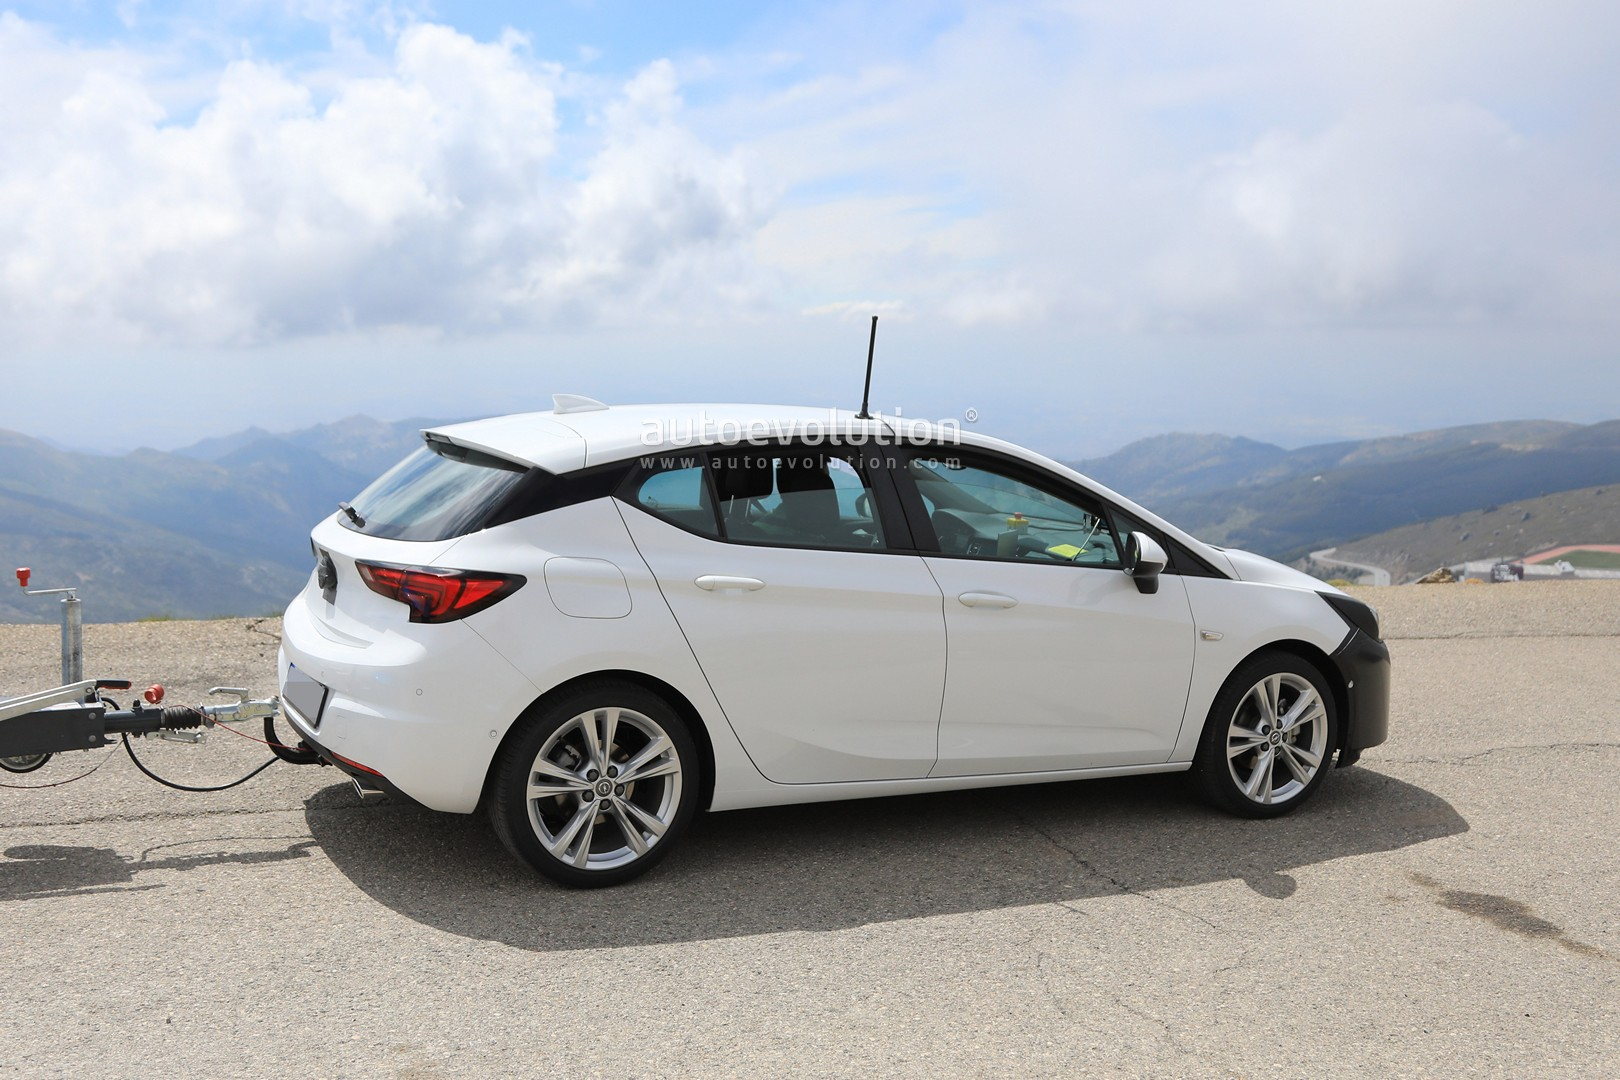 2021 Opel Astra Will Have Peugeot Platform and Up to 220 ...